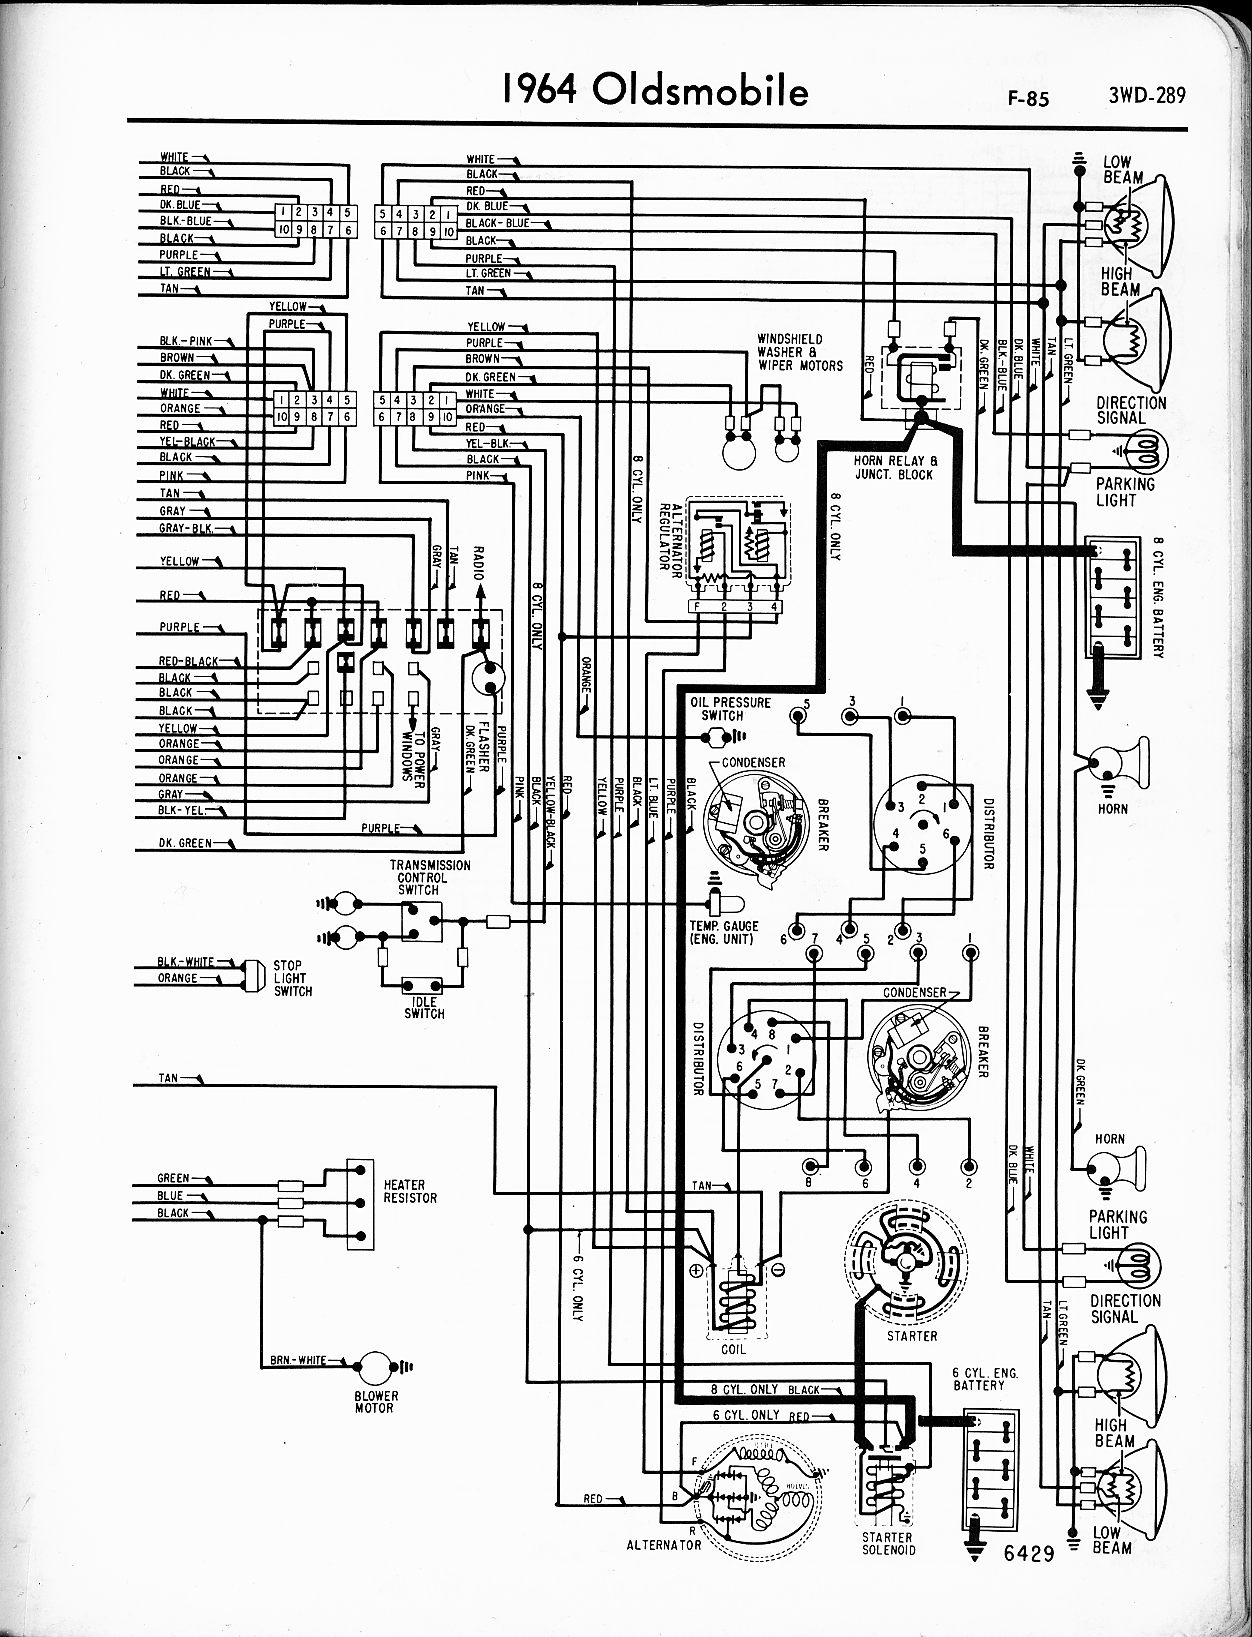 radio wiring harness diagram on oldsmobile silhouette ... 1967 oldsmobile 98 wiring diagram #4